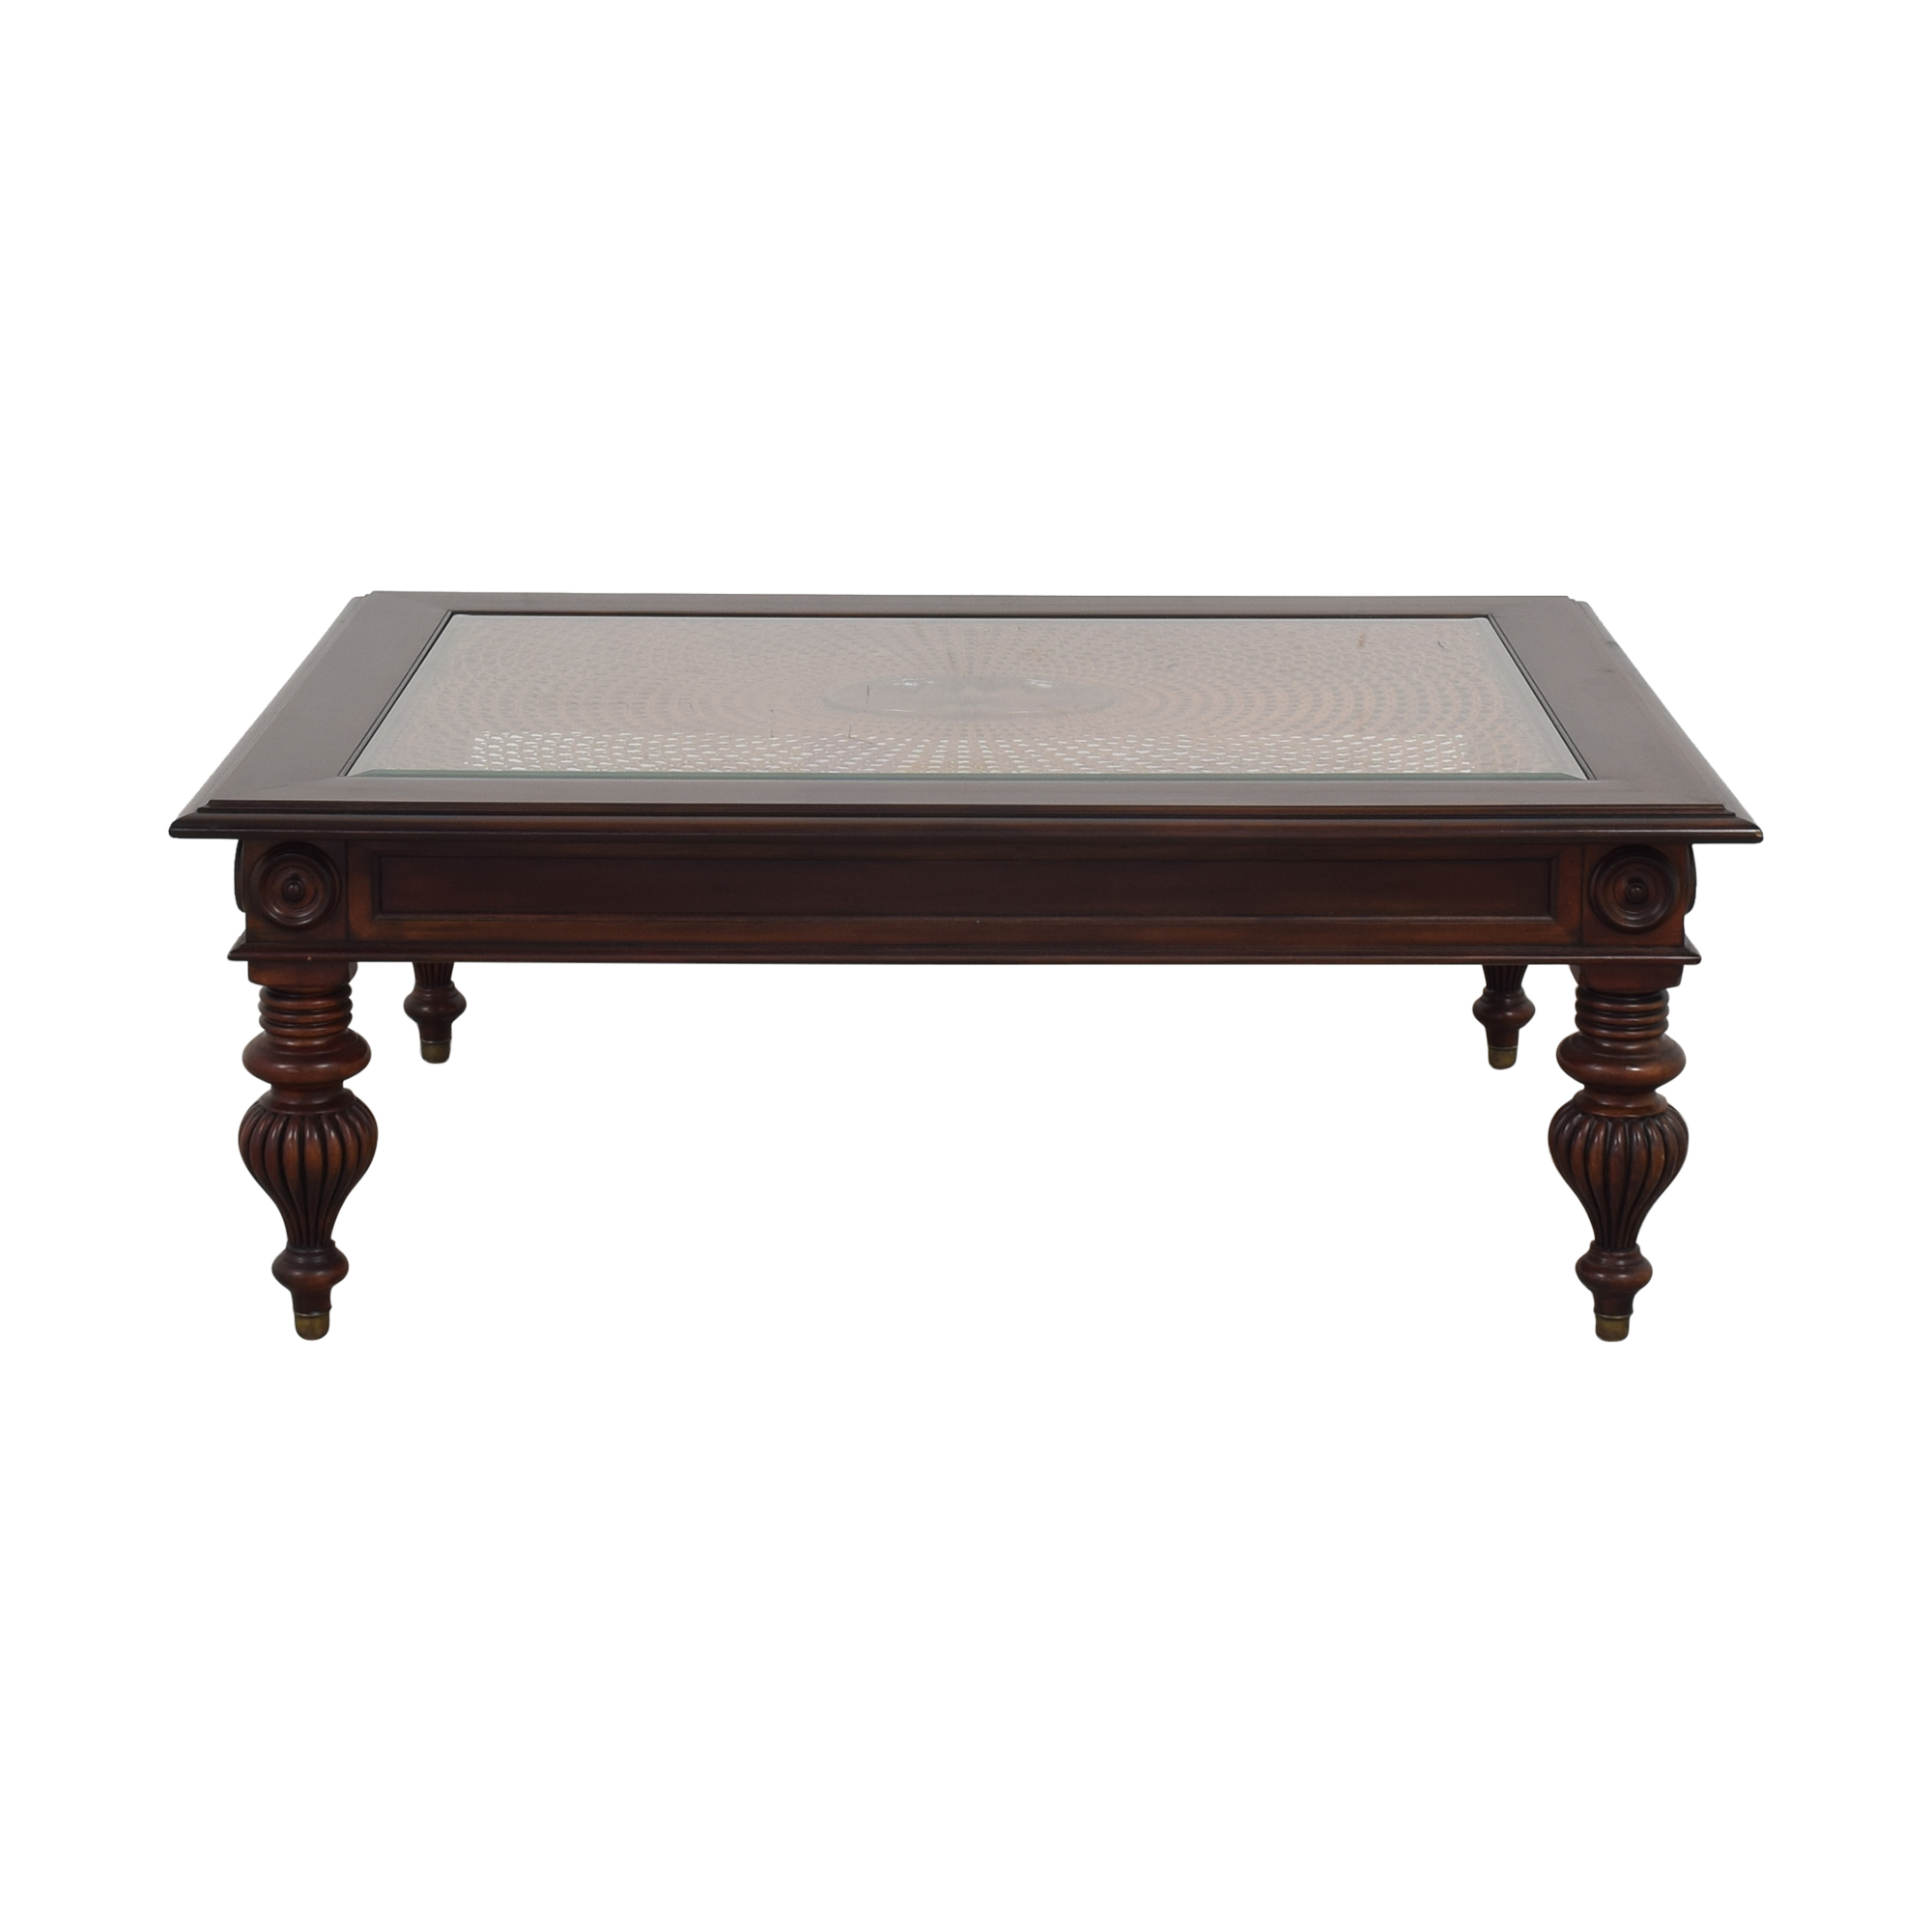 Ethan Allen Ethan Allen British Classic Coffee Table on sale